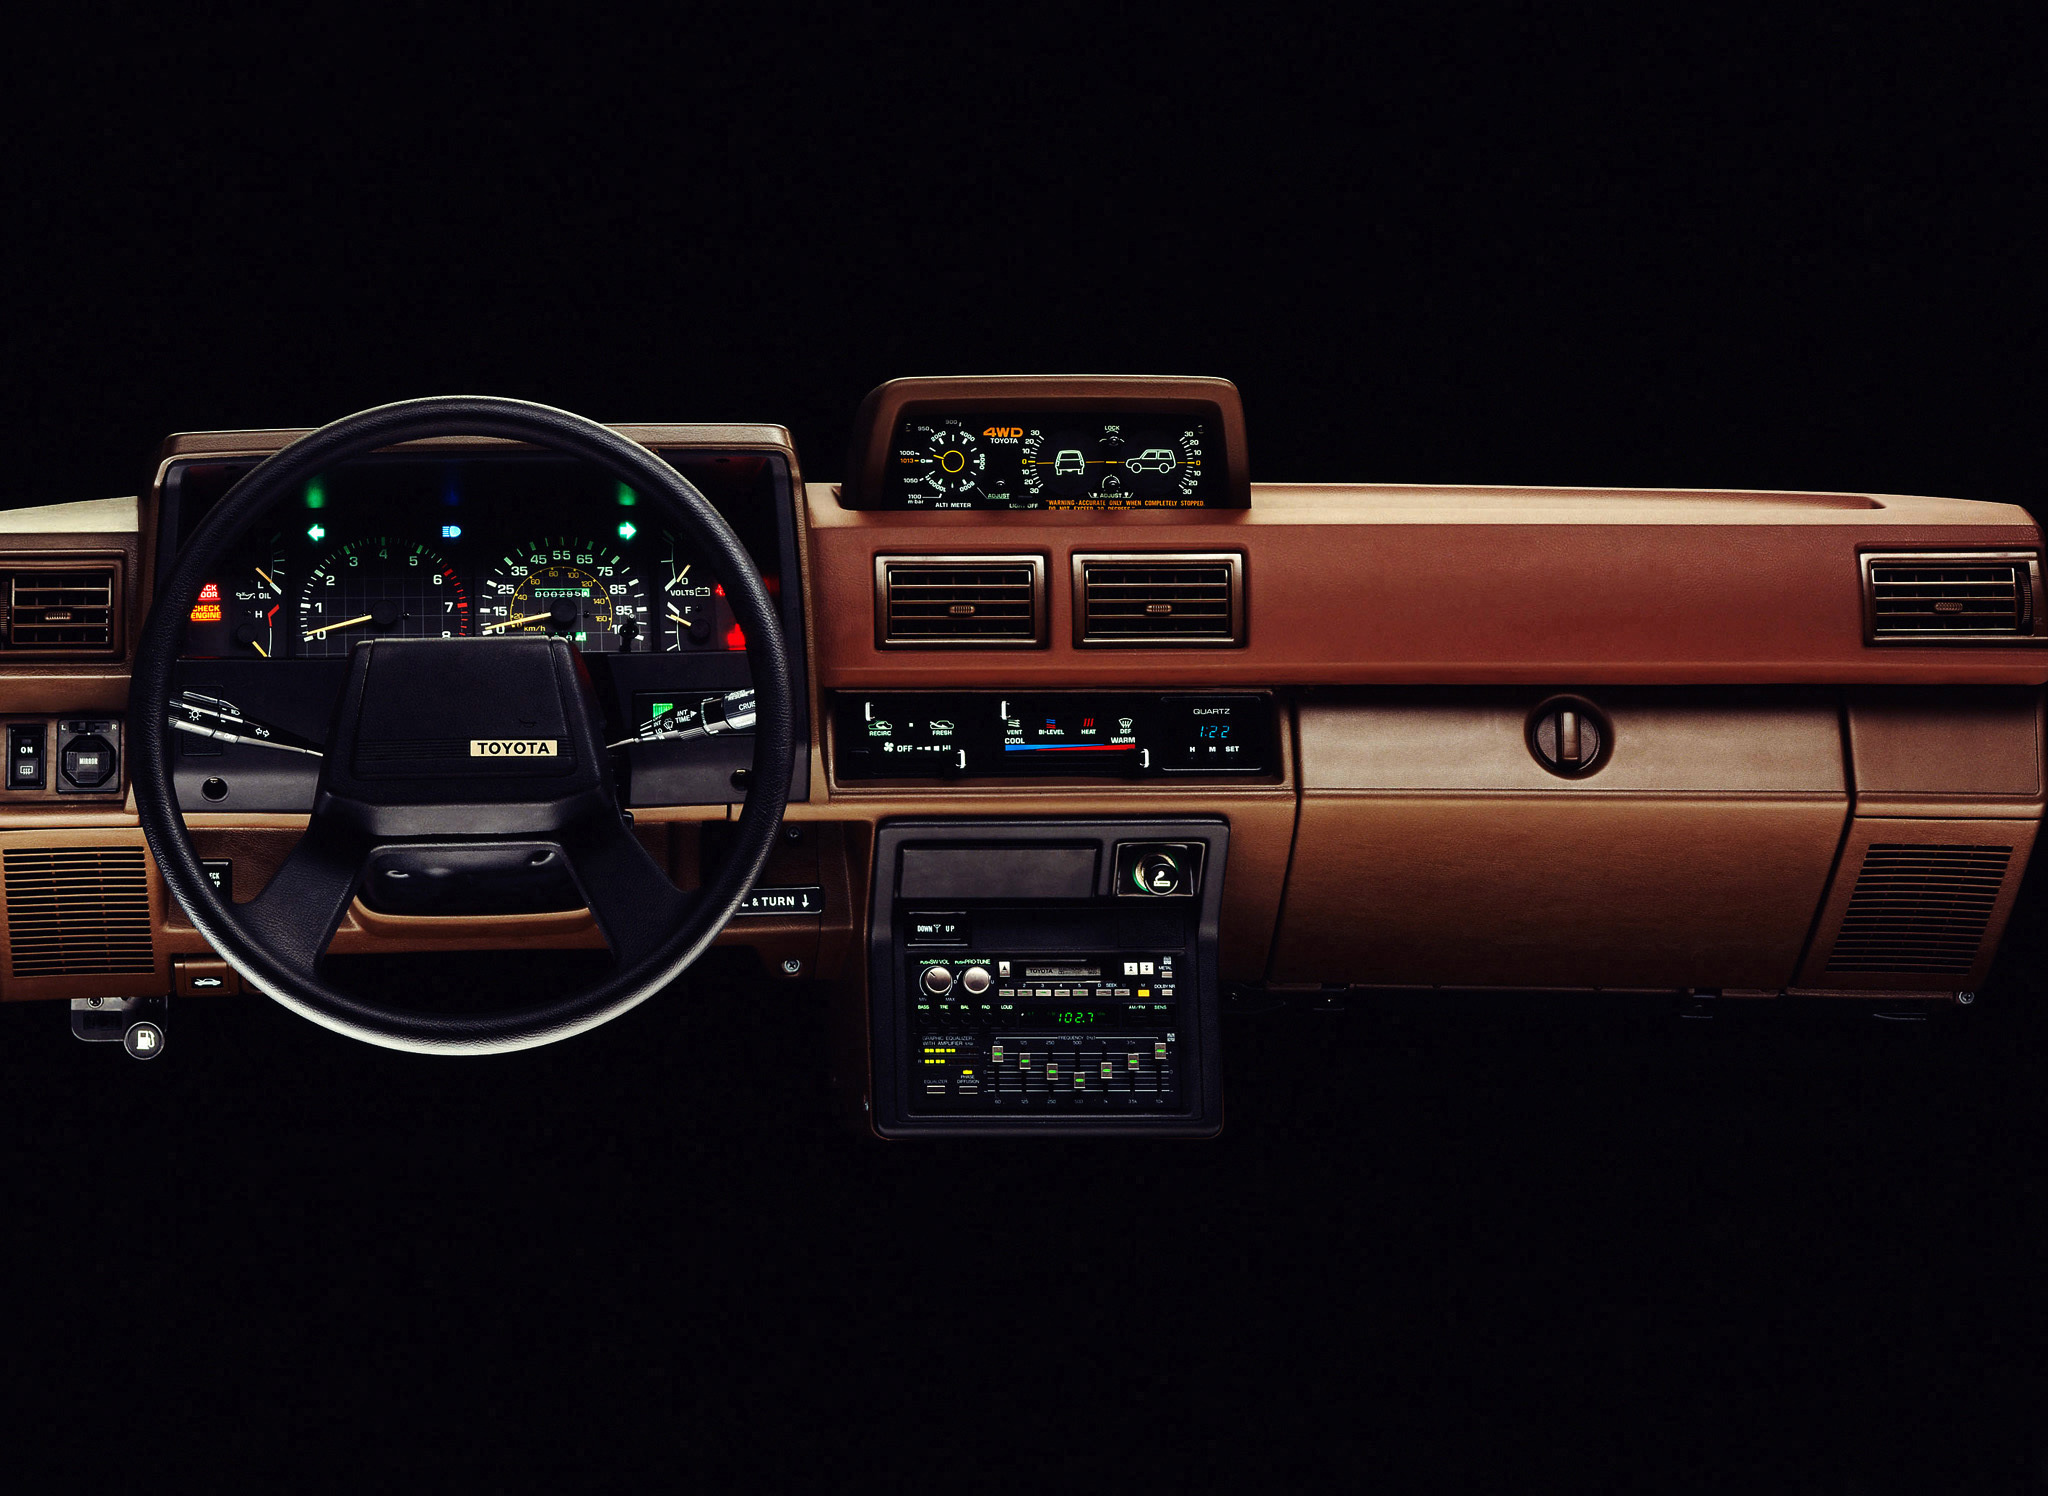 1984 Toyota 4Runner dash